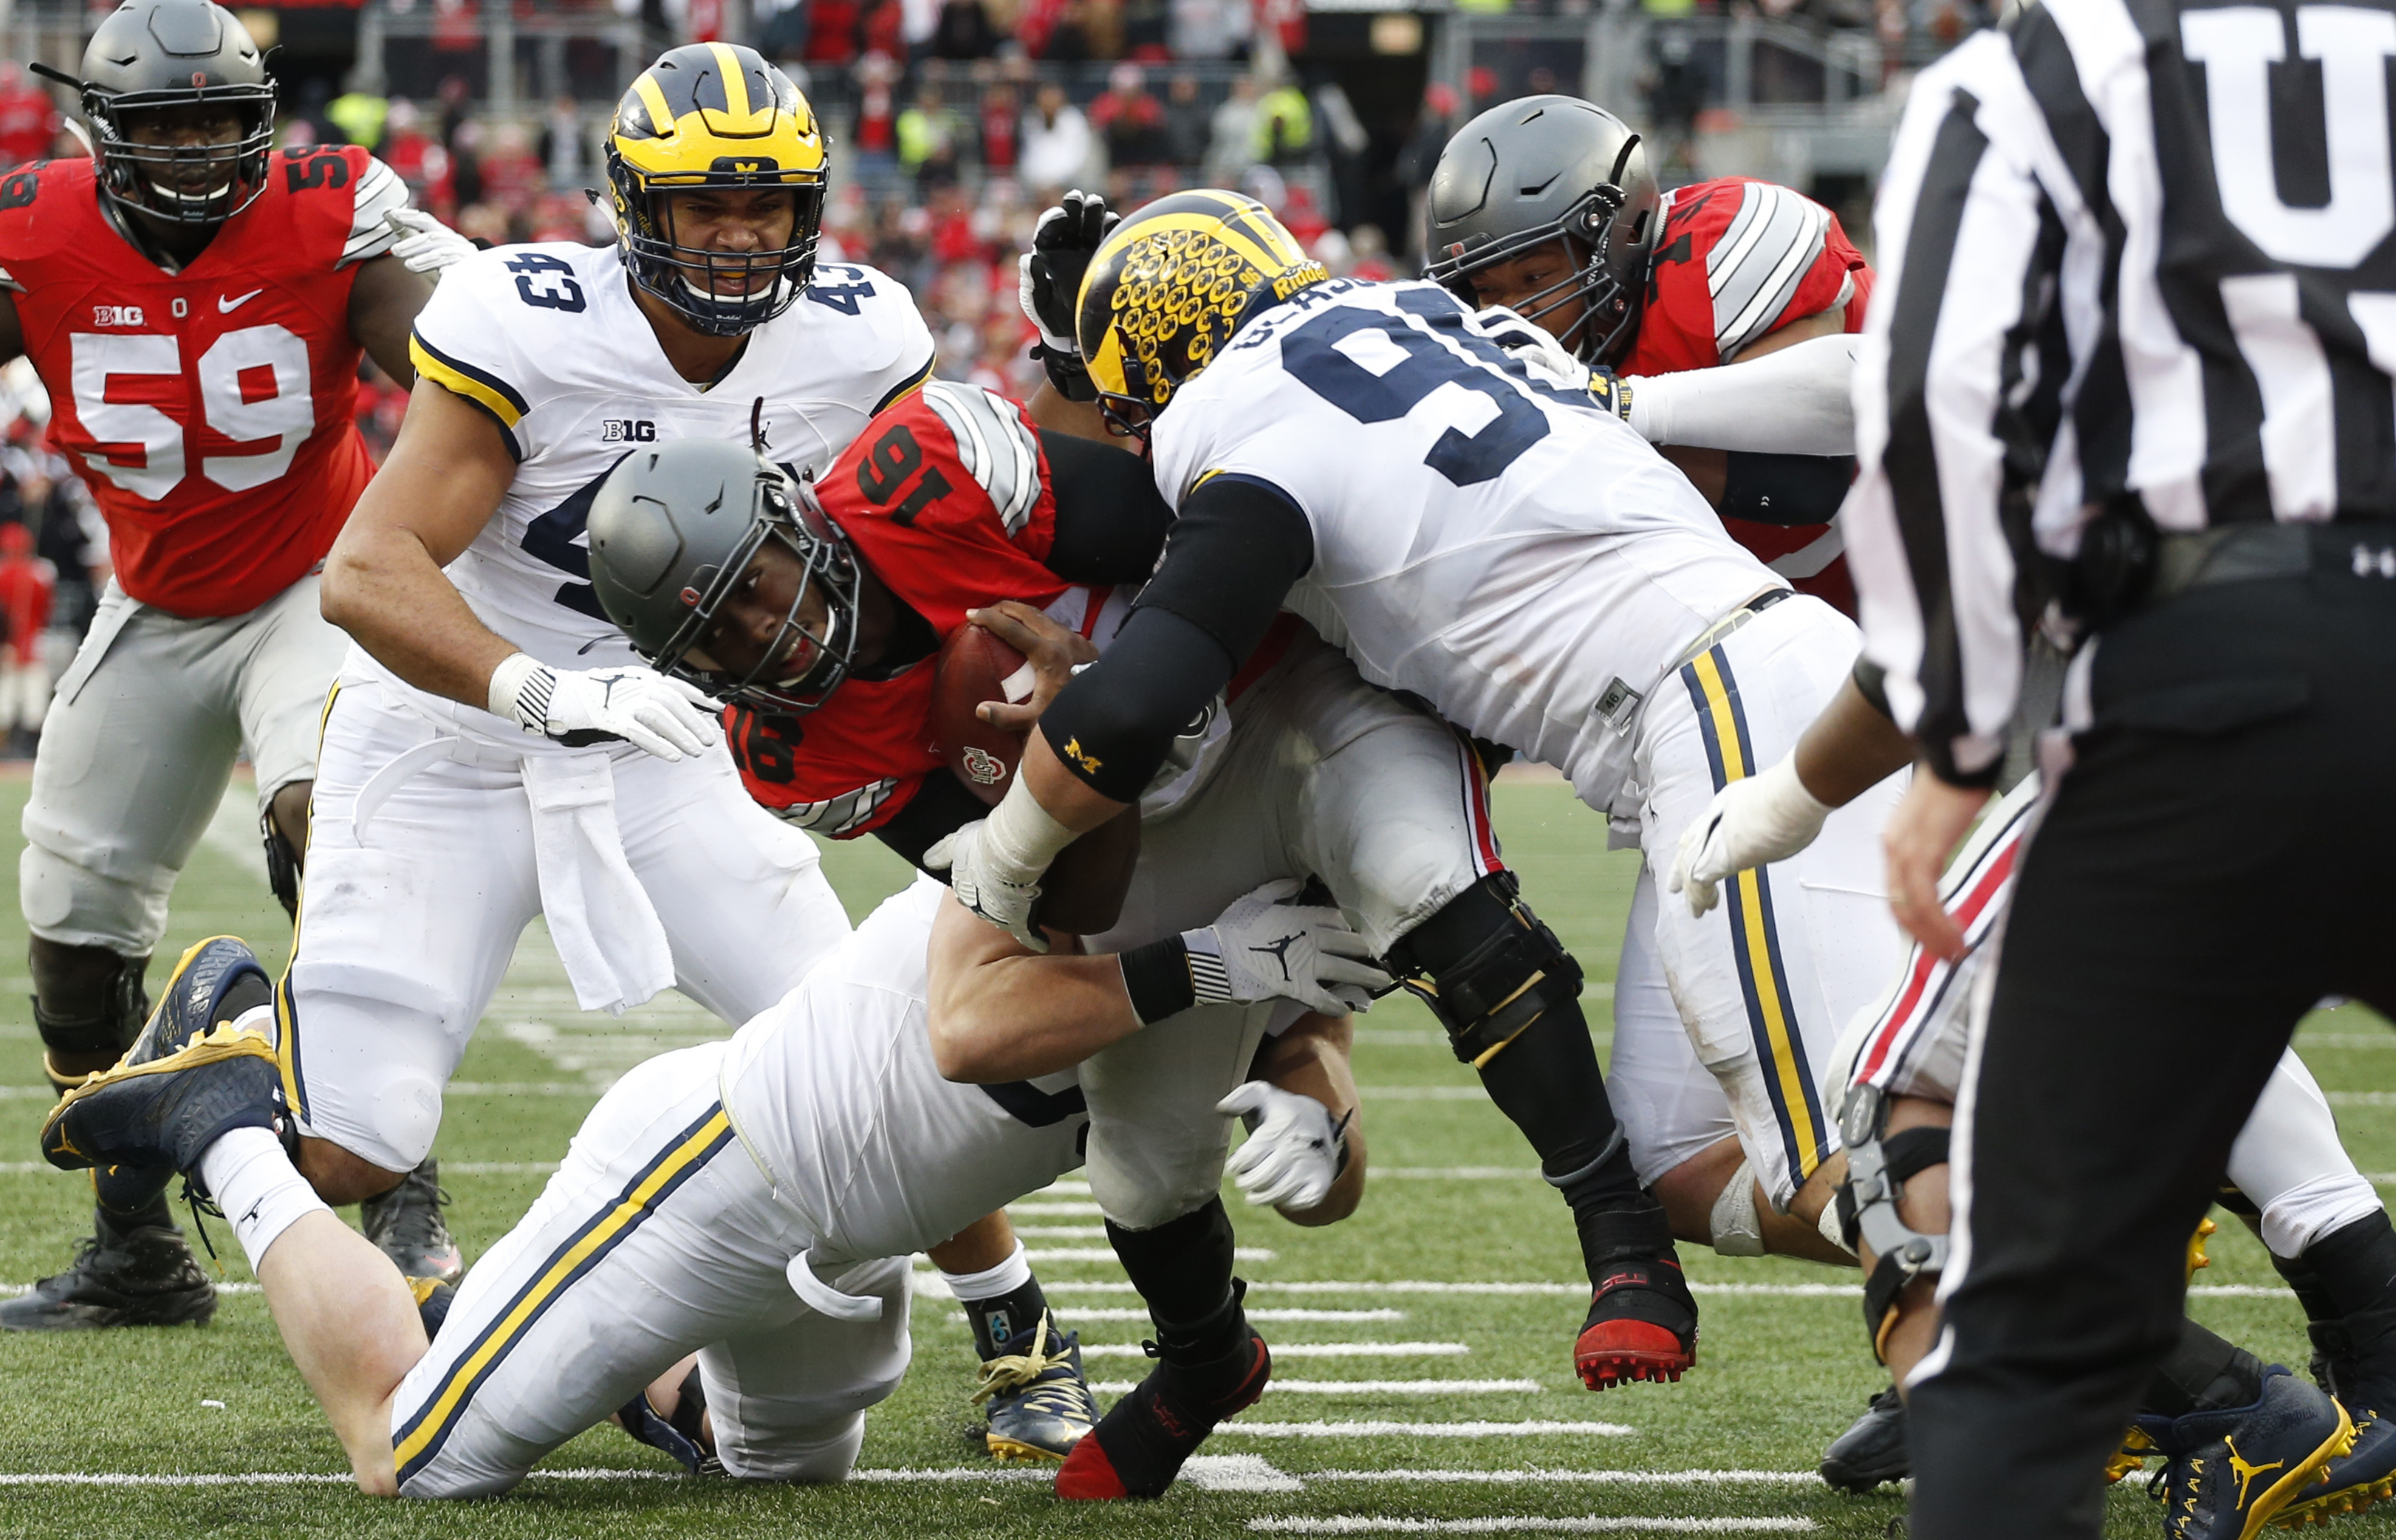 FILE - In this Nov. 26, 2016, file photo, Ohio State quarterback J.T. Barrett, center, runs for a first down as Michigan defendersChris Wormley, left, Matthew Godin, and Ryan Glasgow make the tackle during the second half of an NCAA college football game,